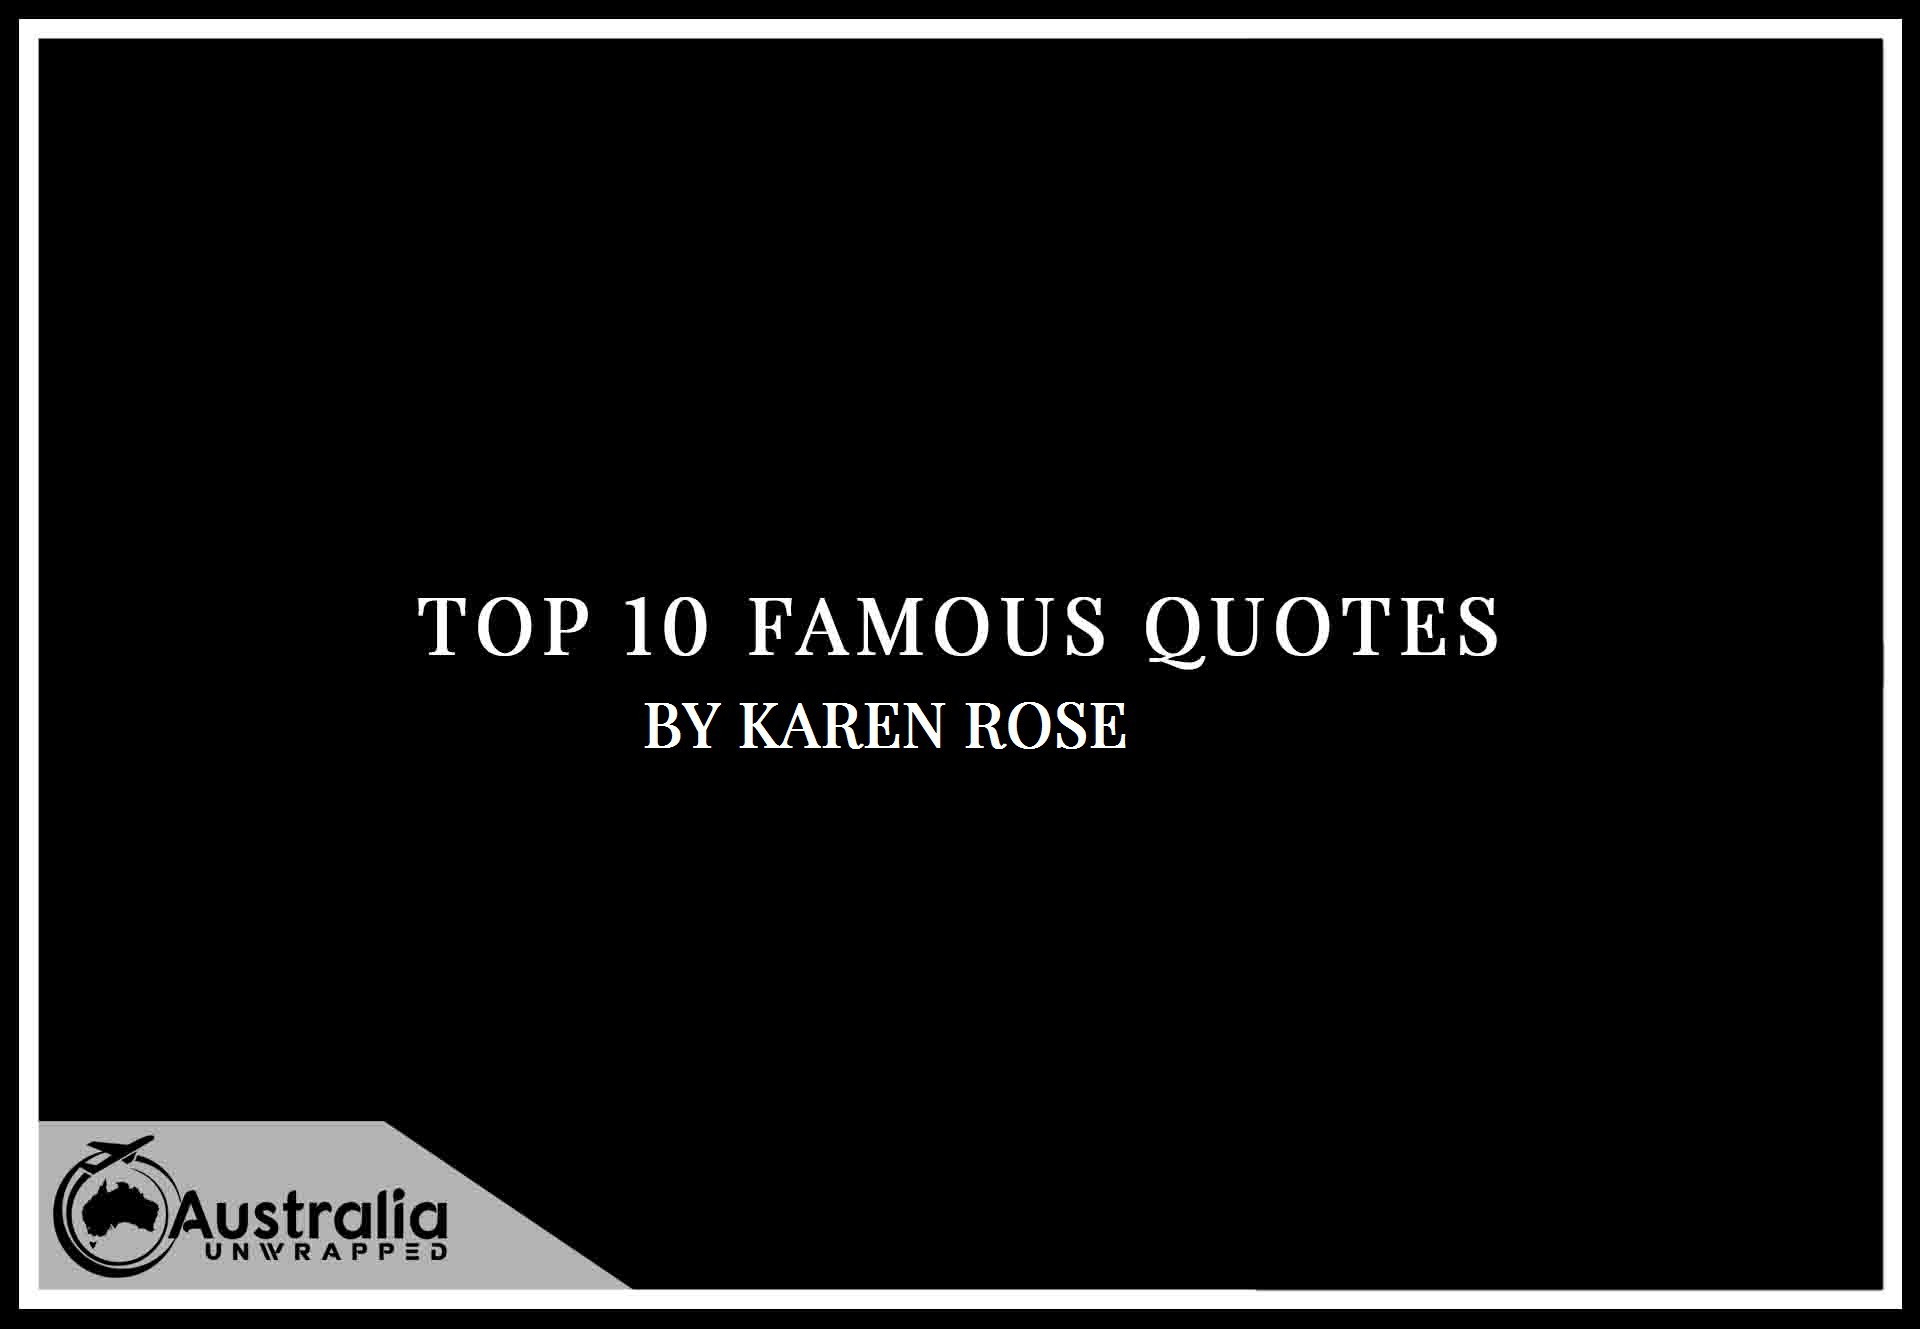 Karen Rose's Top 10 Popular and Famous Quotes